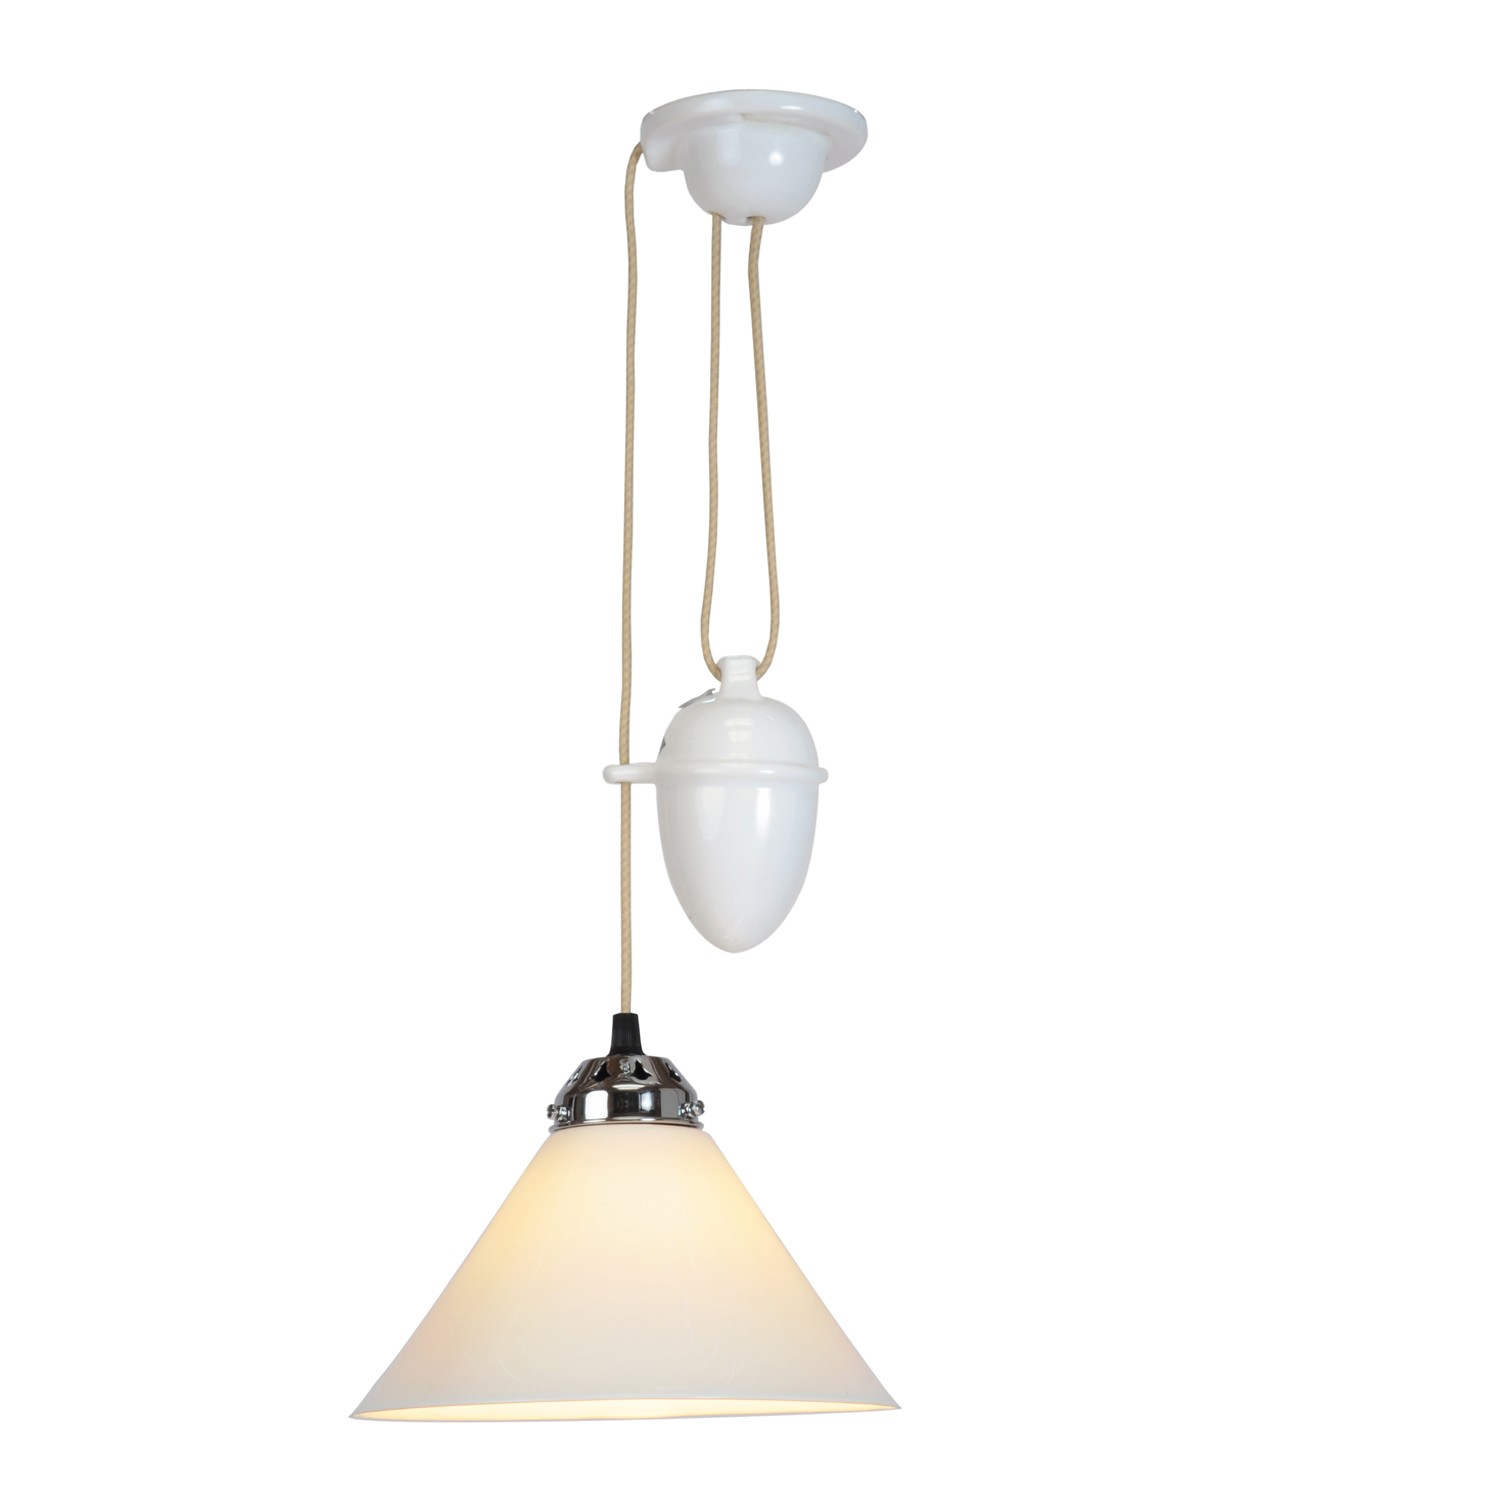 Cobb Large Plain Pendant Light Small, Rise & Fall